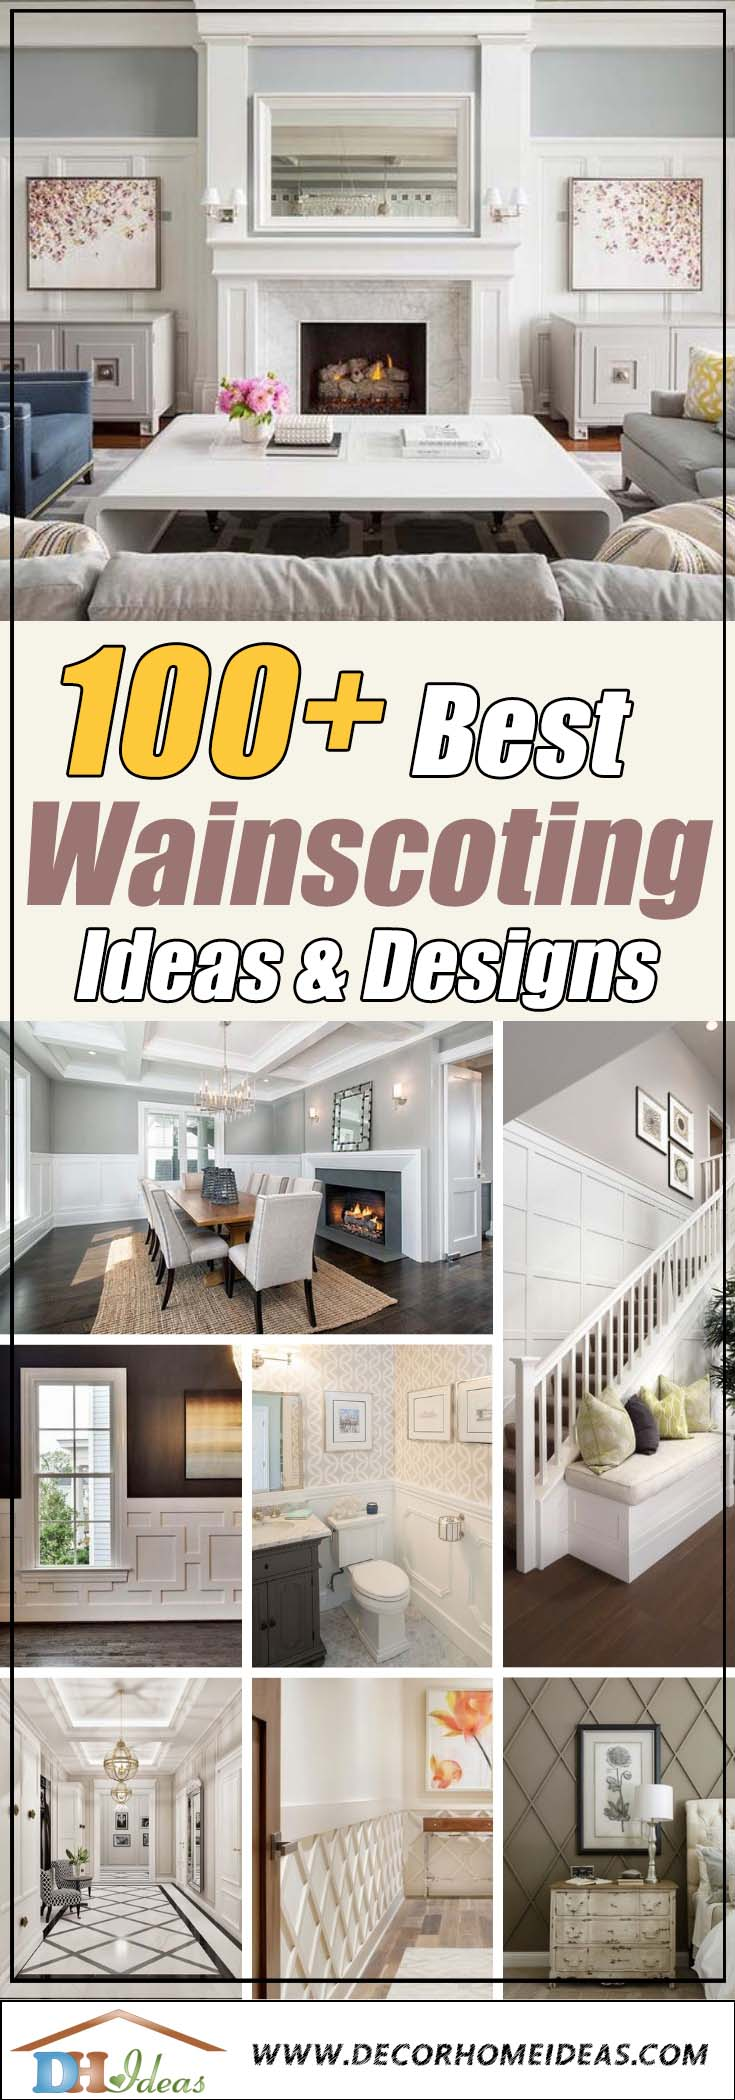 100 Best Wainscoting Ideas - Bathroom, Dining Room, Living Room, Staircases, Bedroom. Wainscoting and paneling design, photos and DIY projects.